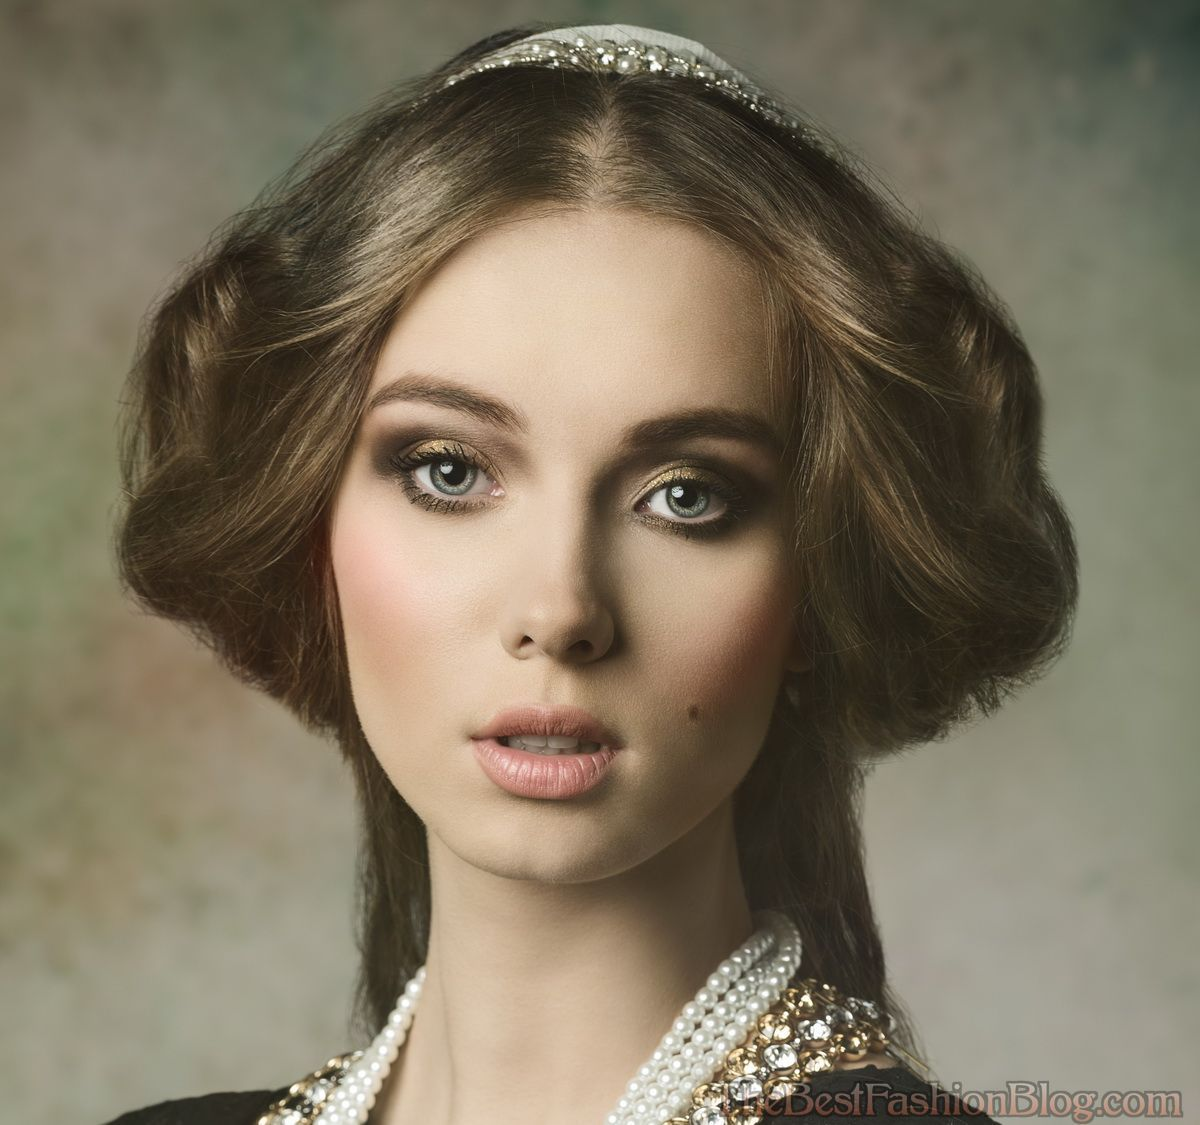 Victorian Style Wedding Hair: Image Result For Victorian Era Makeup